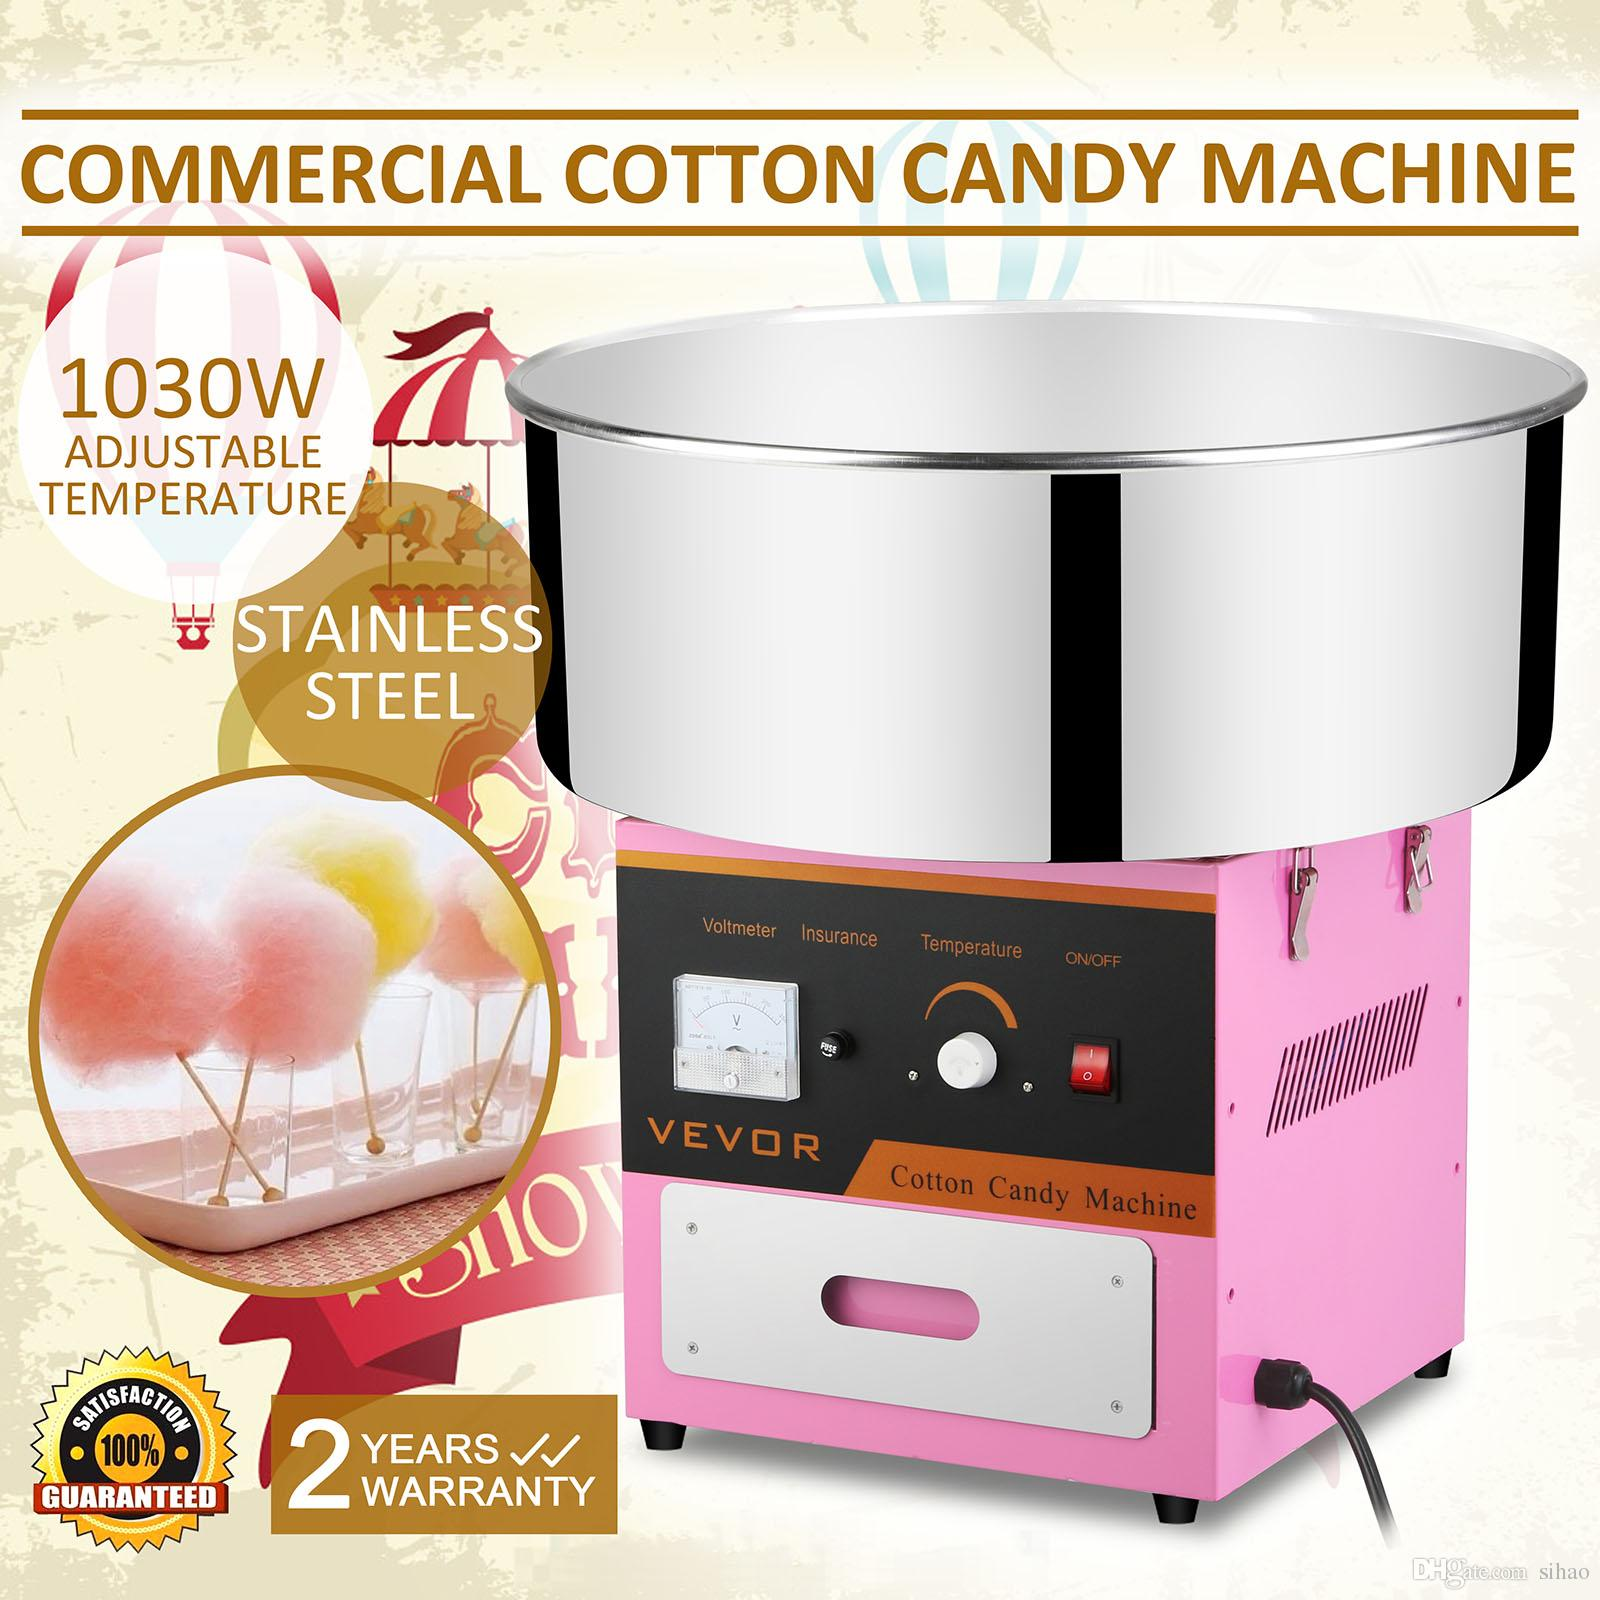 cotton candy machine floss maker brand new commercial electric cotton candy machine floss maker pink 110220v hot sales from sihao 995 dhgatecom - Cotton Candy Machines